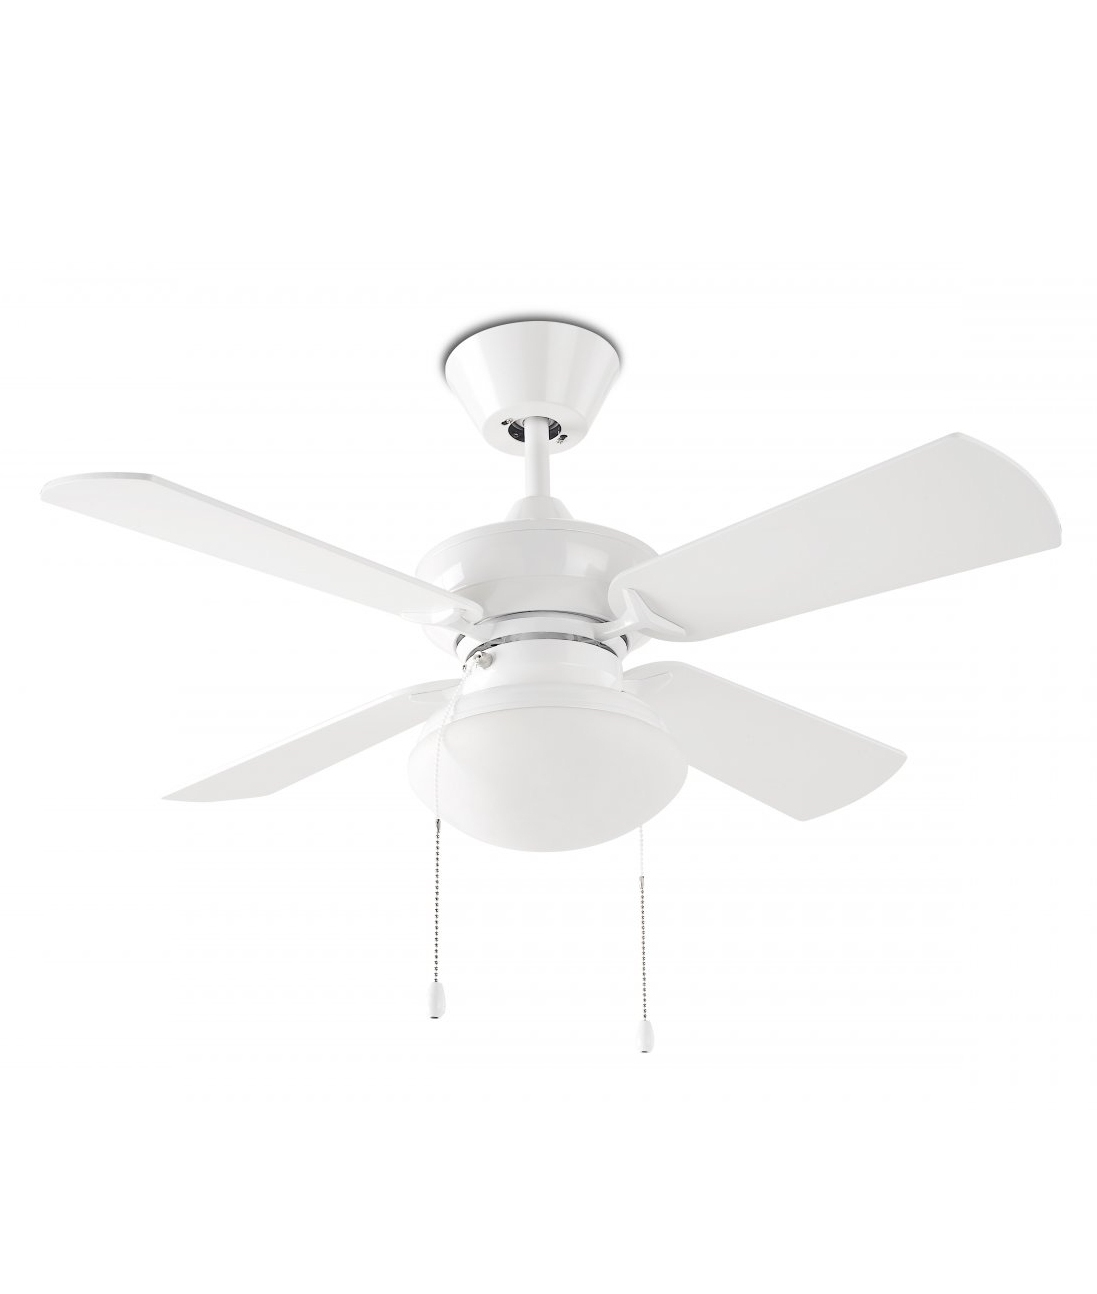 White Ceiling Fan With Four Reversible Blades And Downwards Light